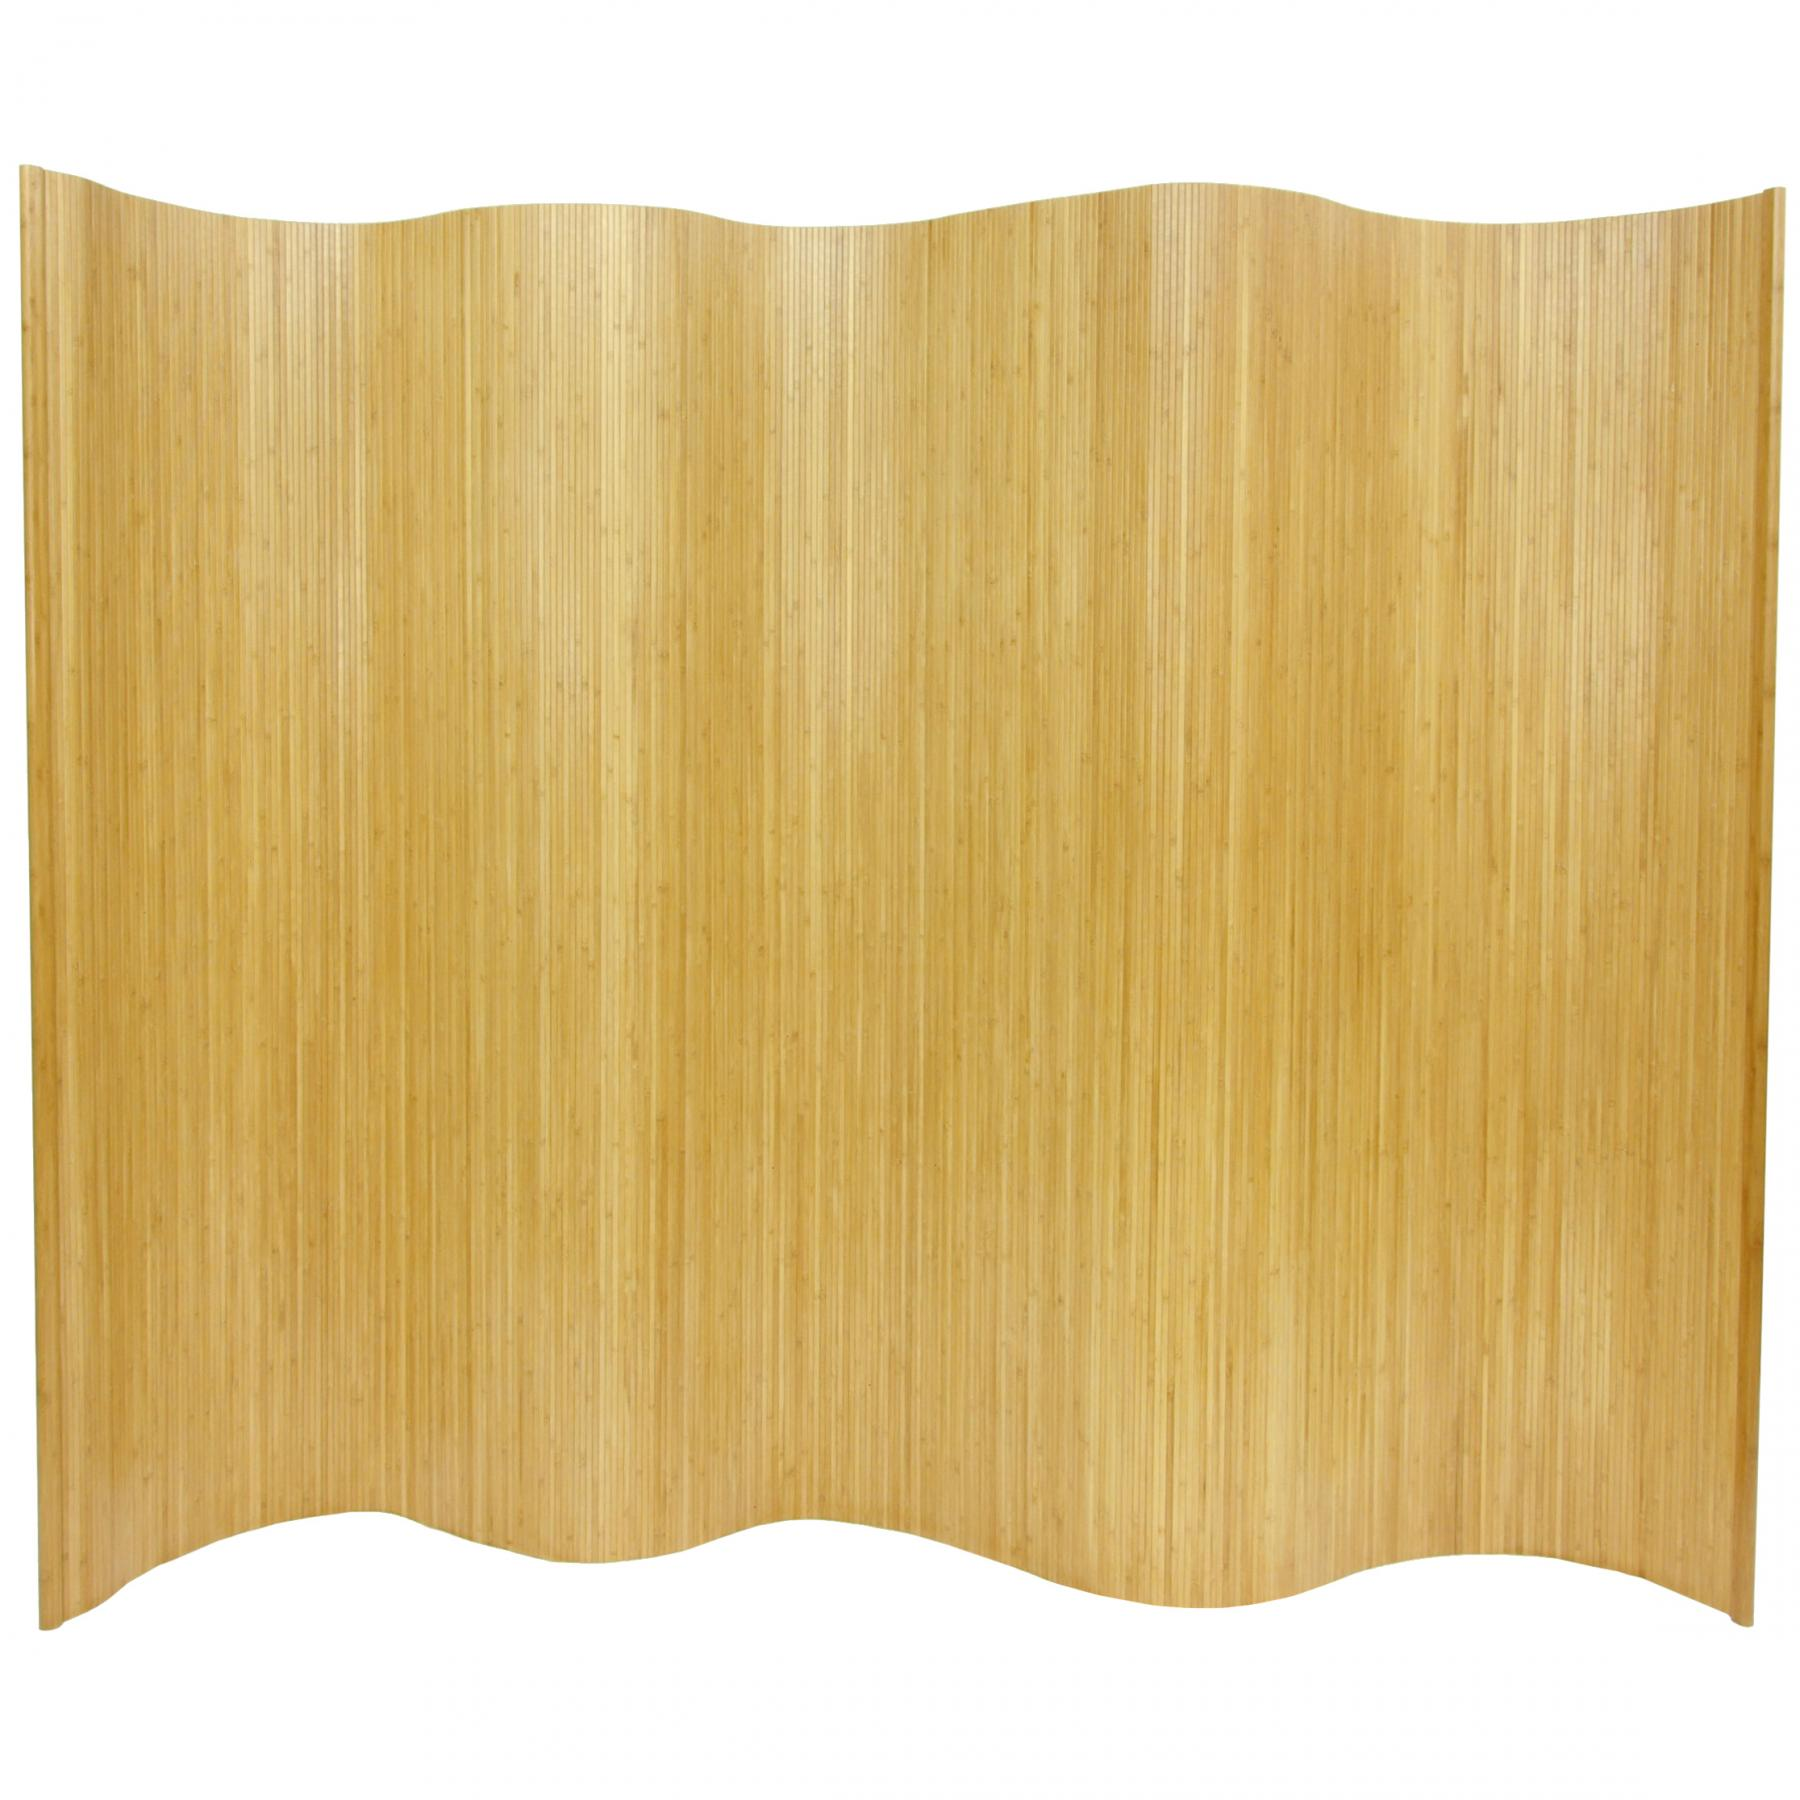 6 ft tall bamboo wave screen